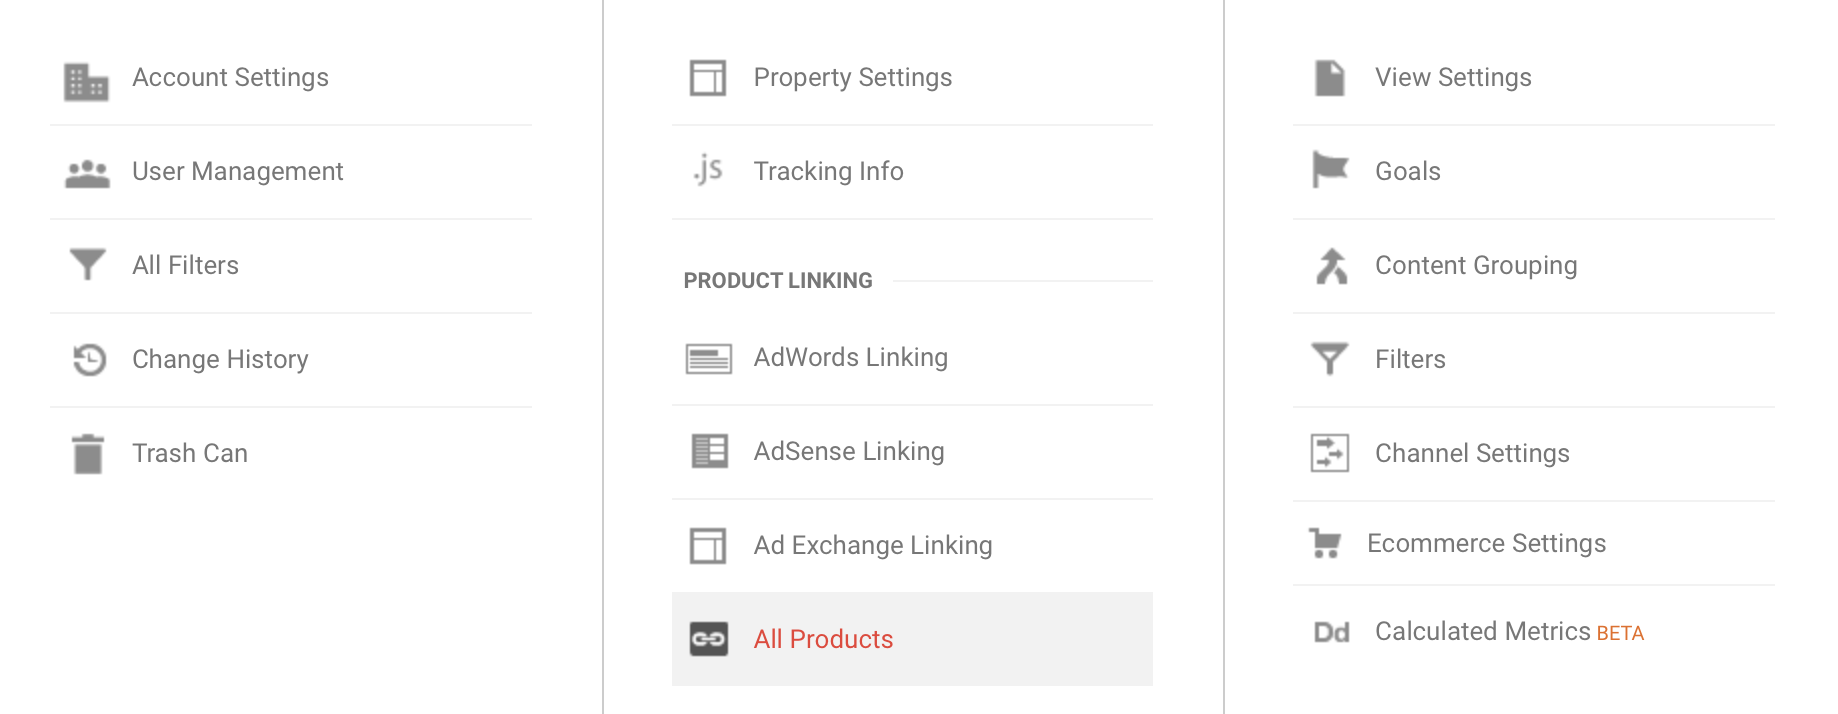 Screen shot of All Products in Google Analytics